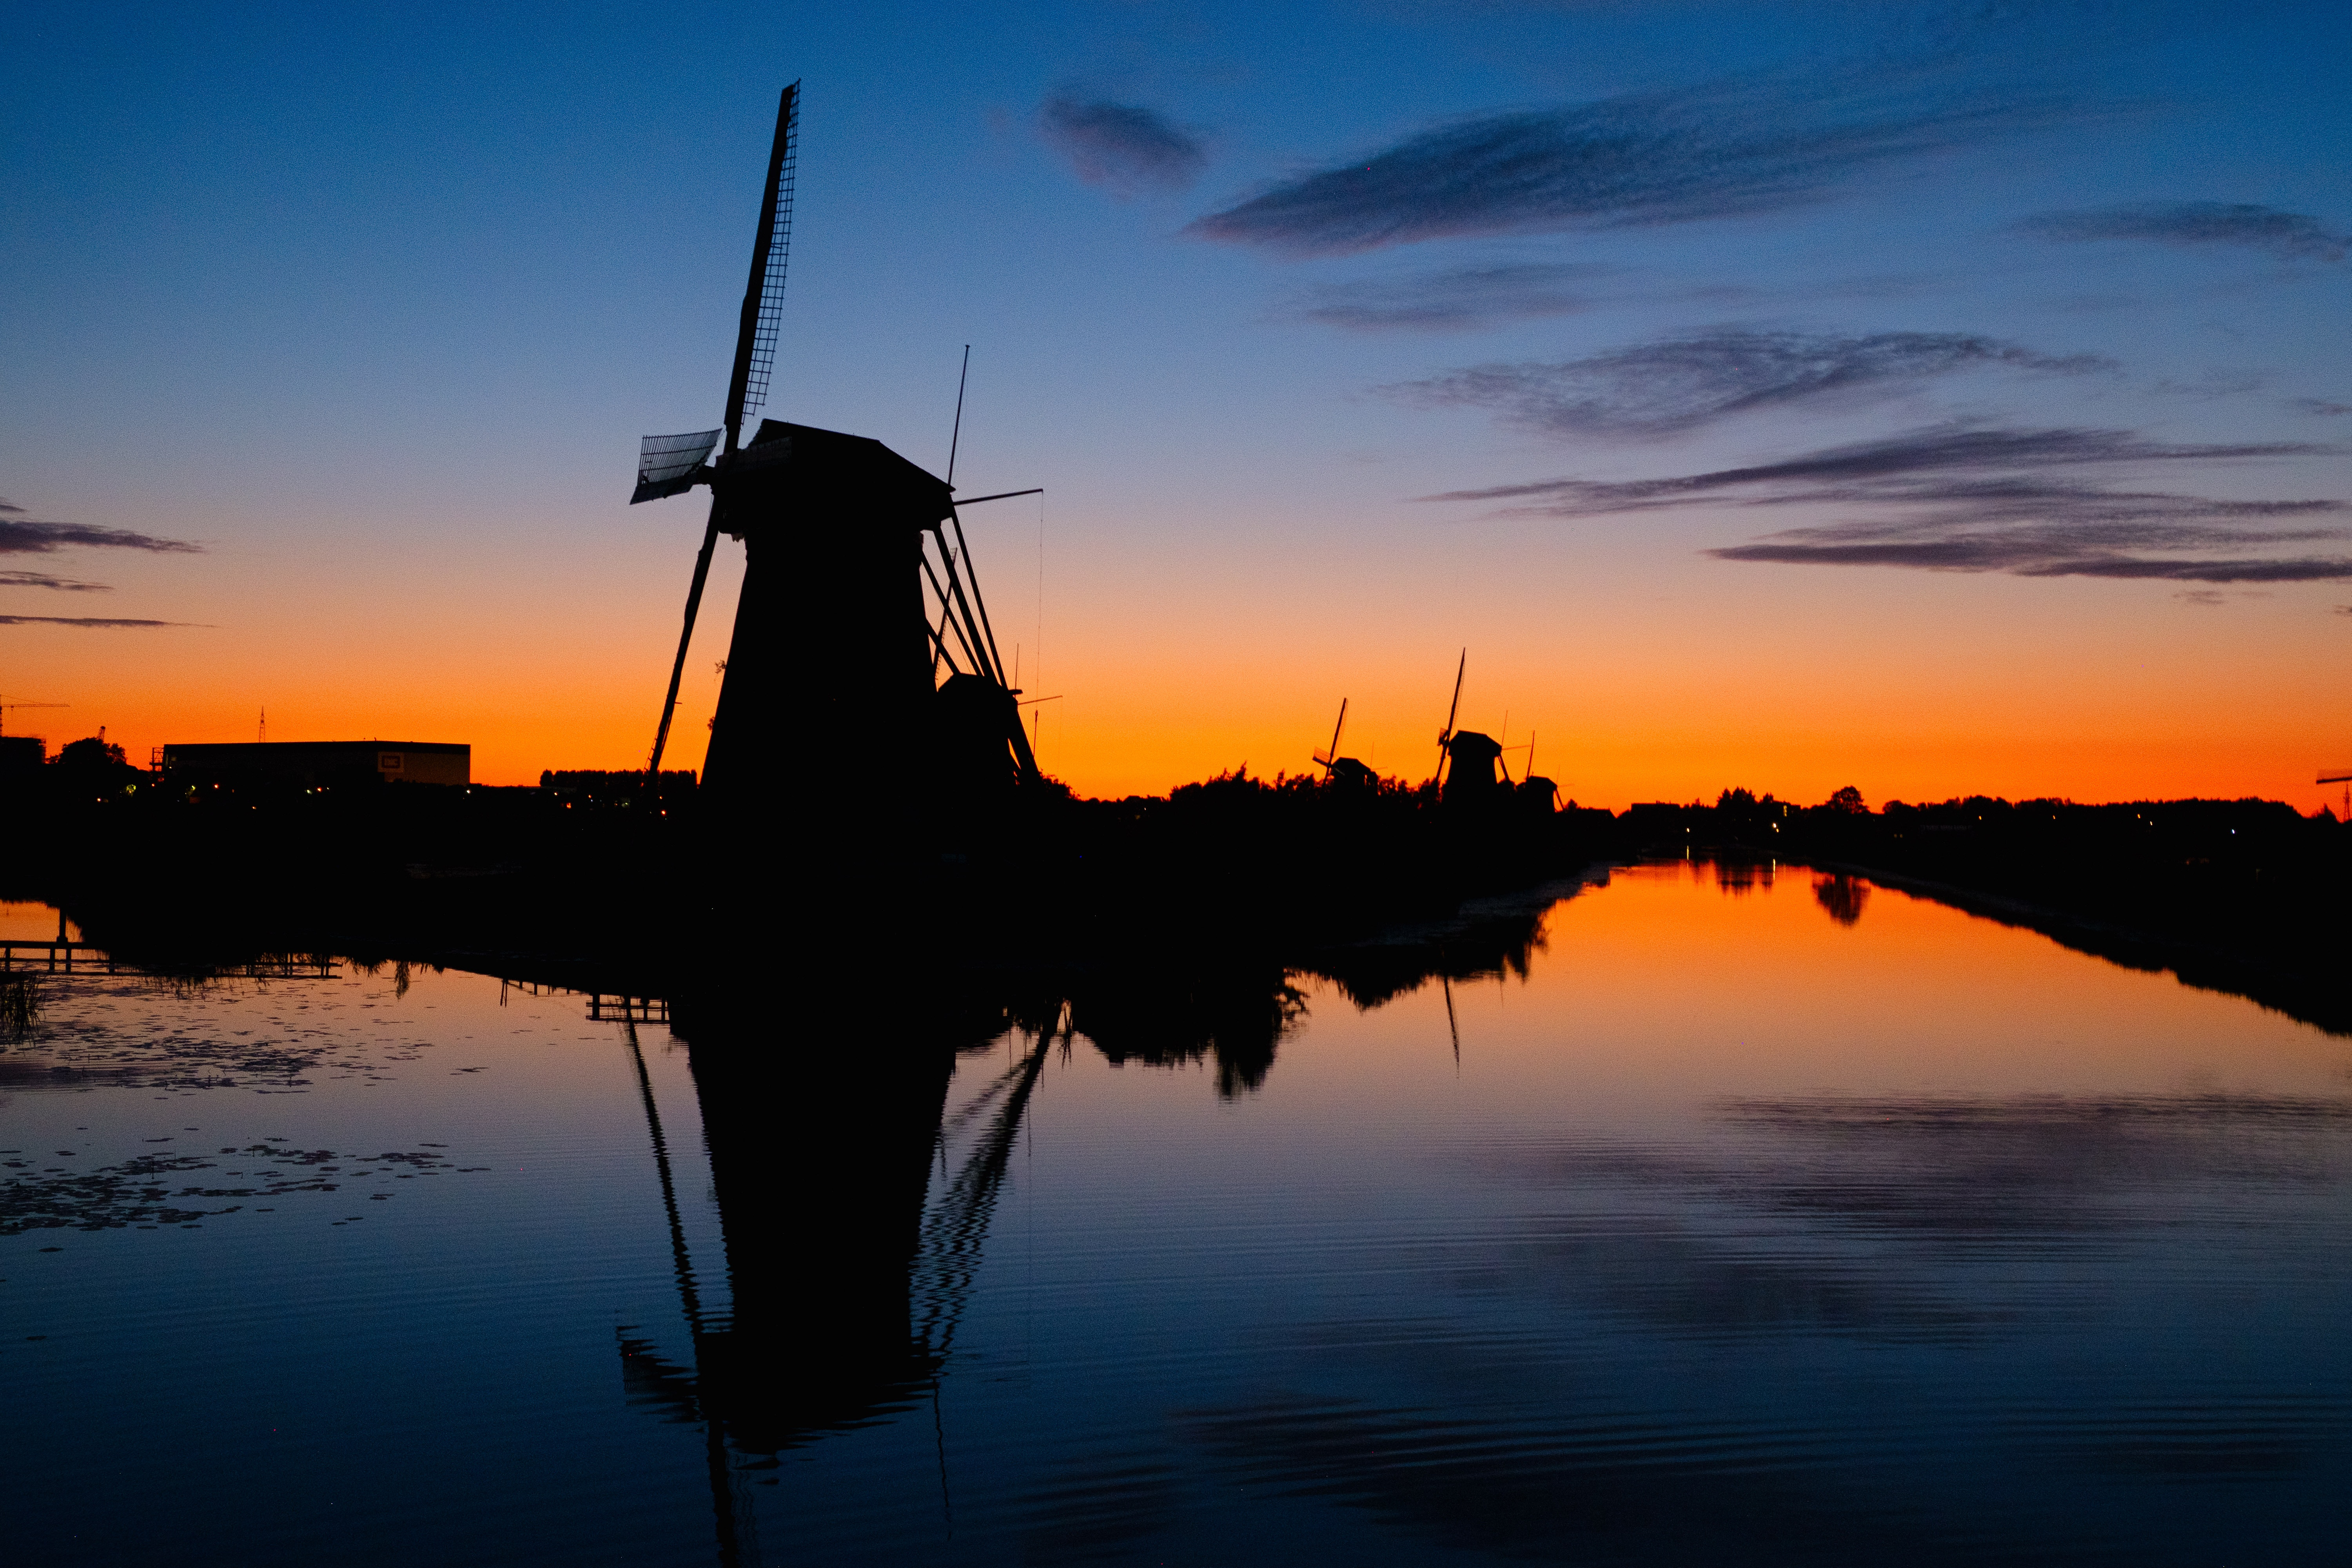 Image of windmills in the Netherlands